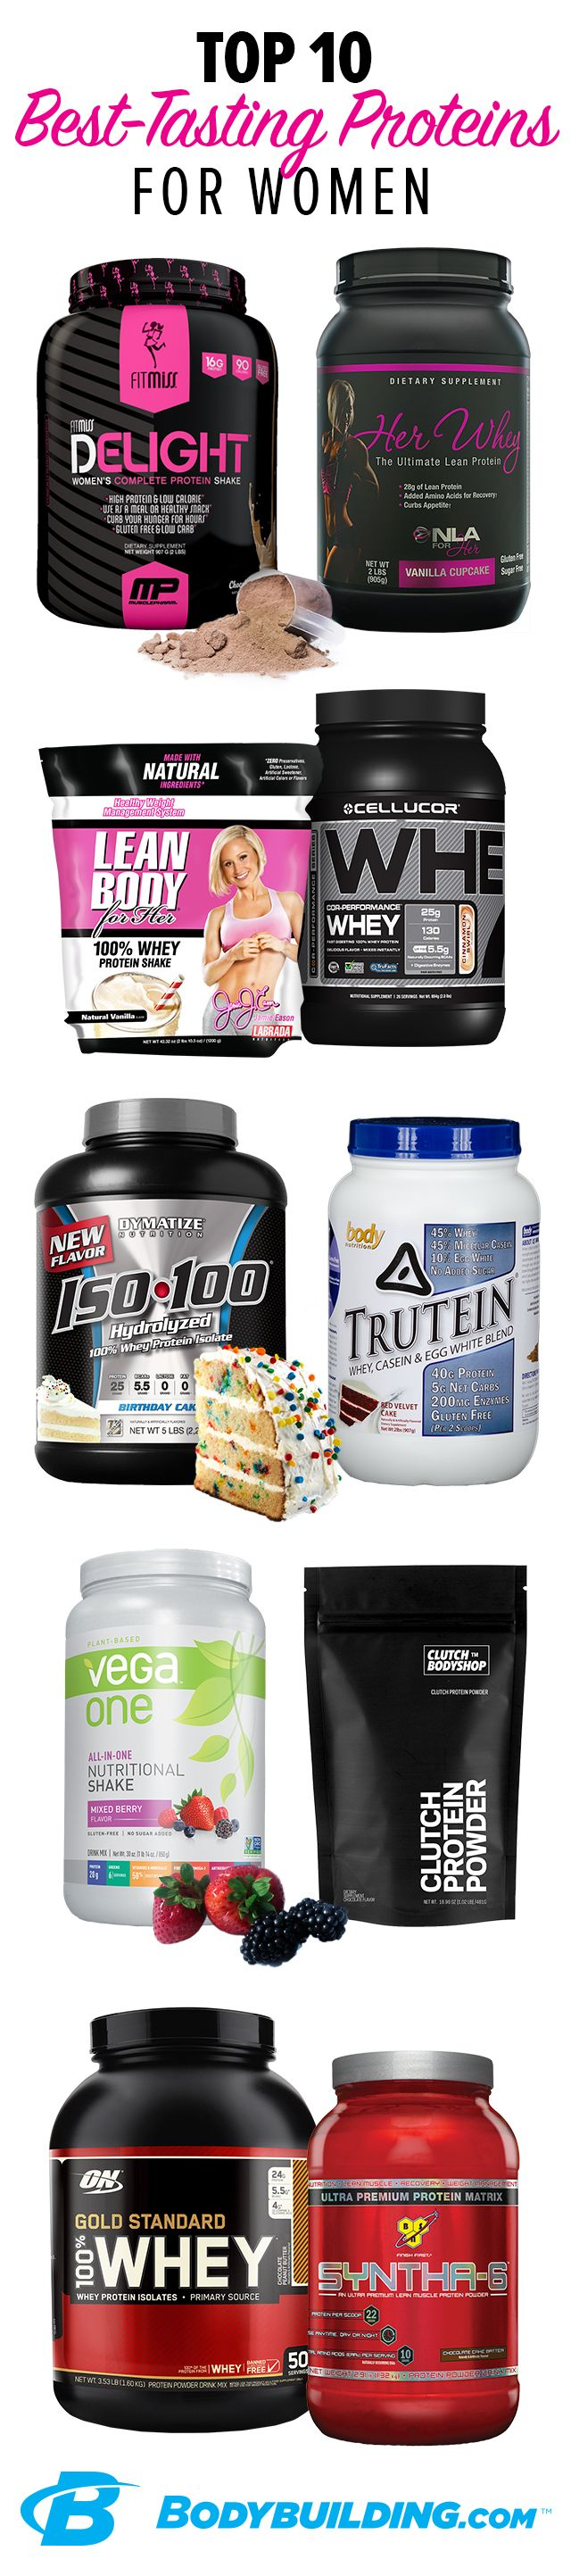 10 Best-Tasting Protein Powders For Women. Looking for the best-tasting protein powders to squash your sweet cravings and build your lean, sexy physique? This article has our top 10! Bodybuilding.com